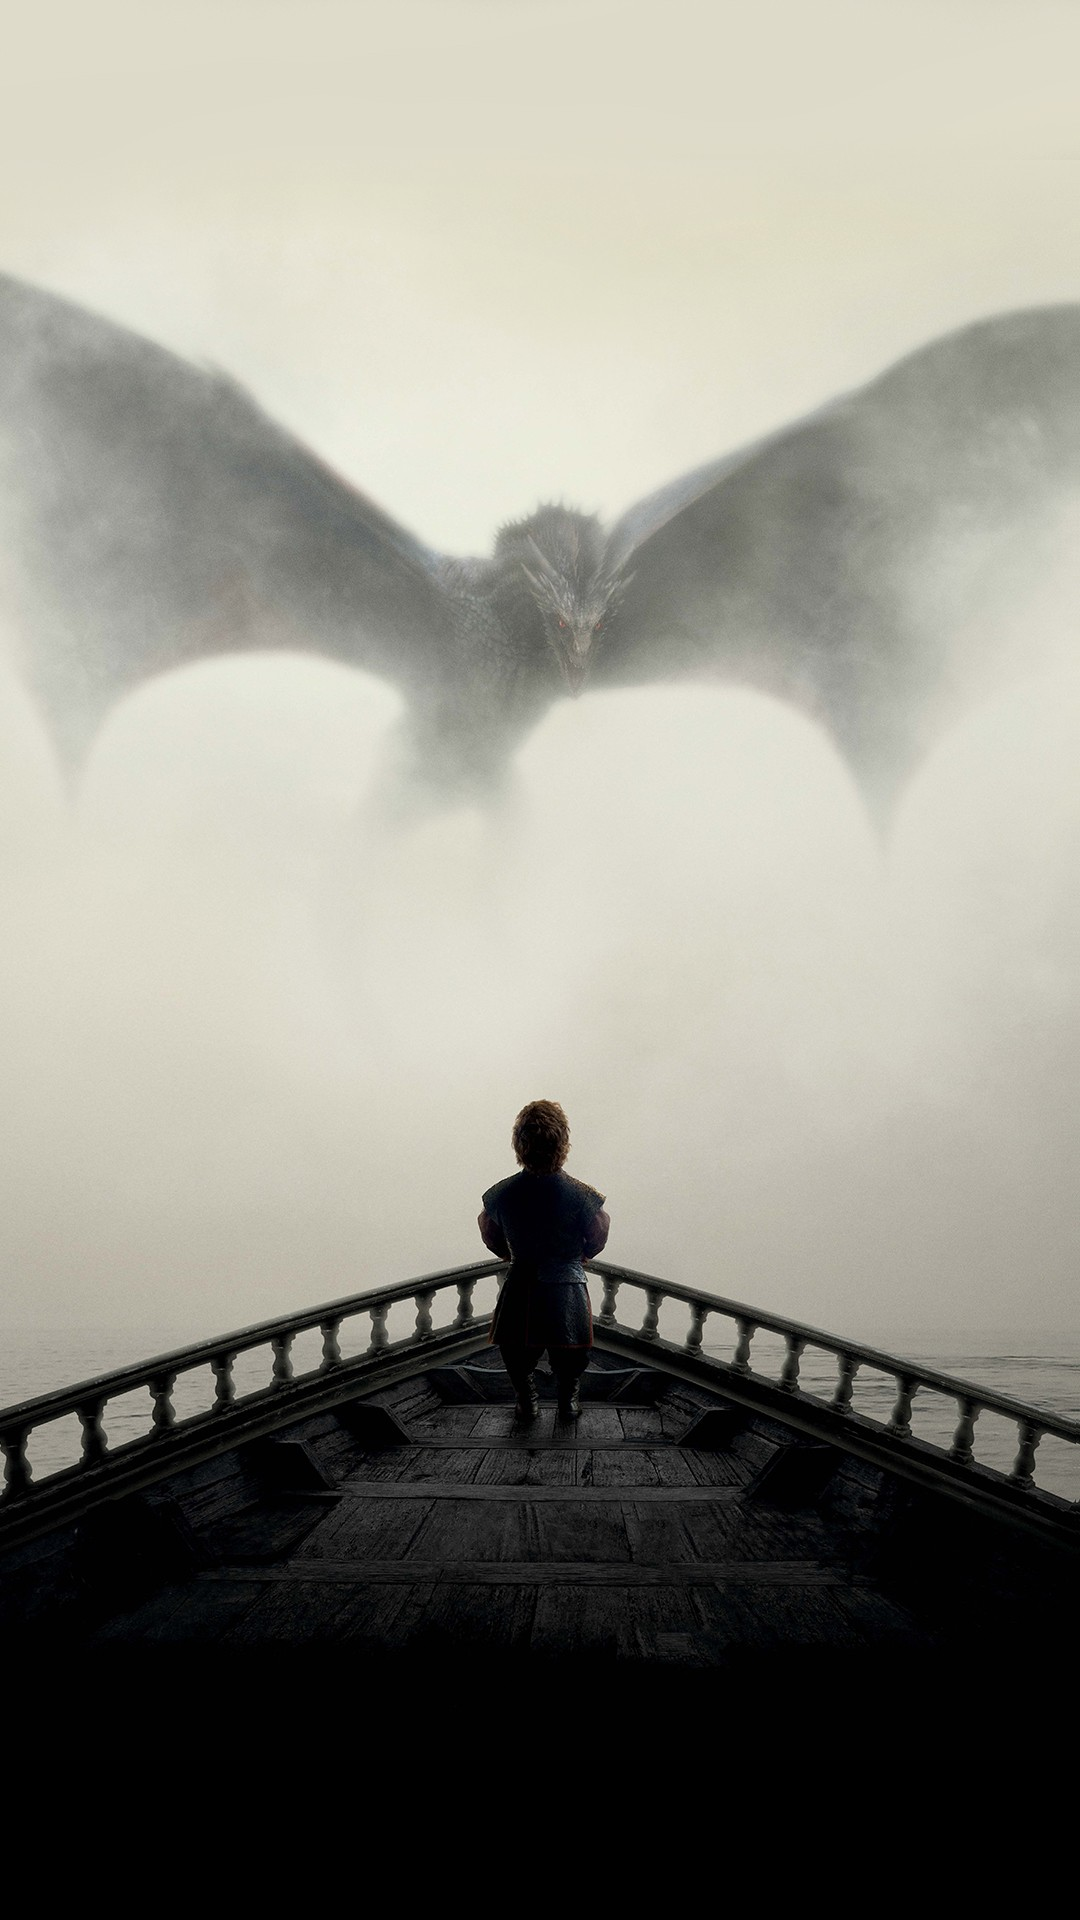 Dragon Game Of Thrones Iphone Wallpaper